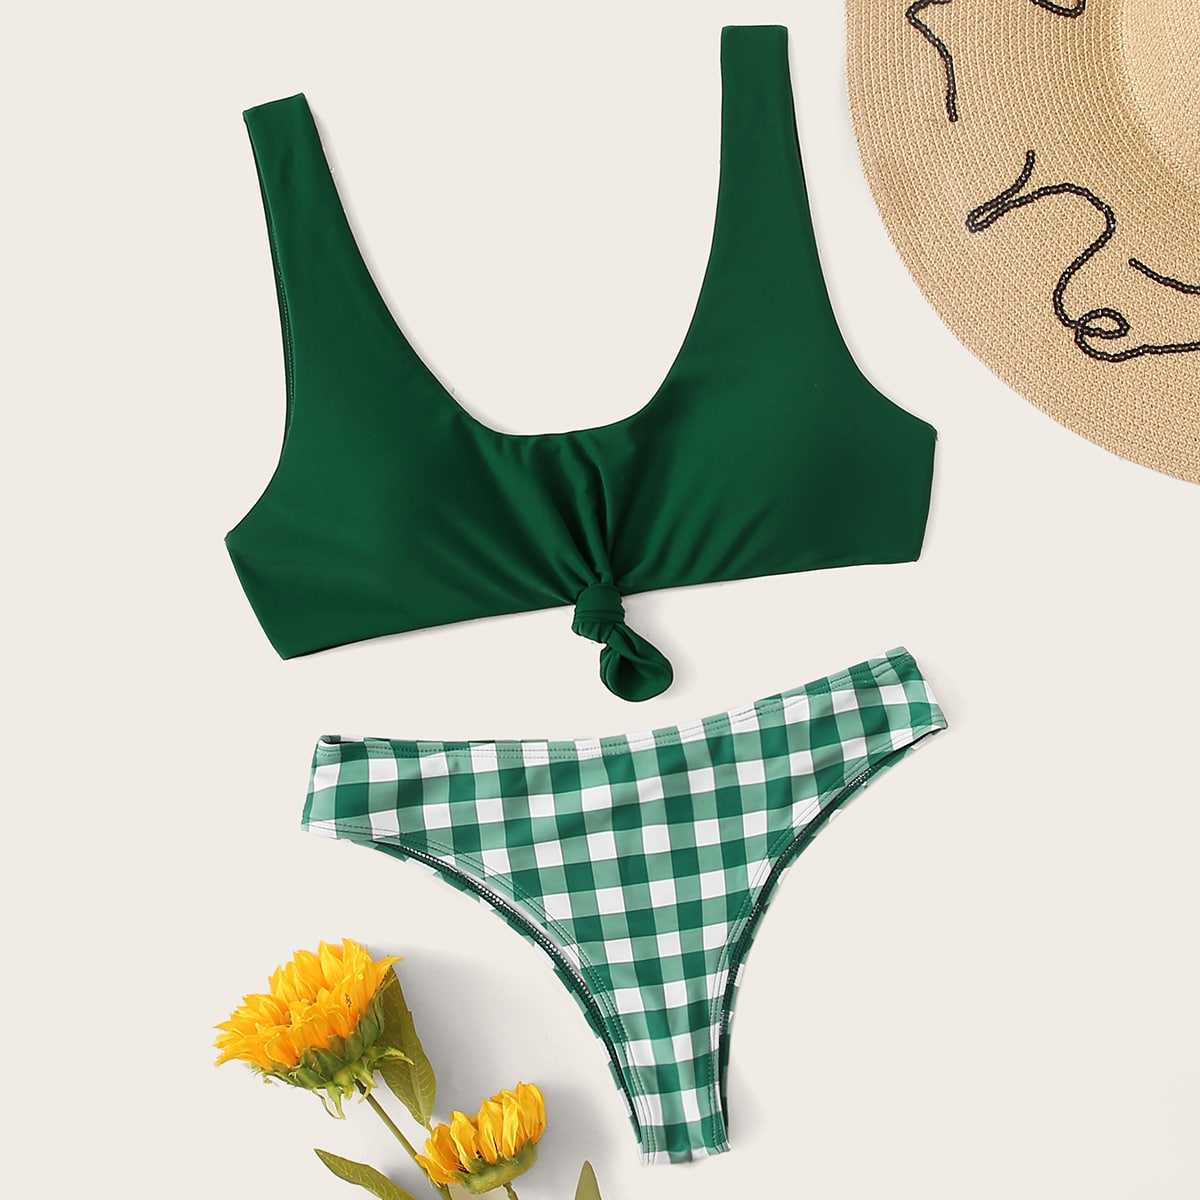 Knot Front Top With Gingham  Bikini Set in Green by ROMWE on GOOFASH